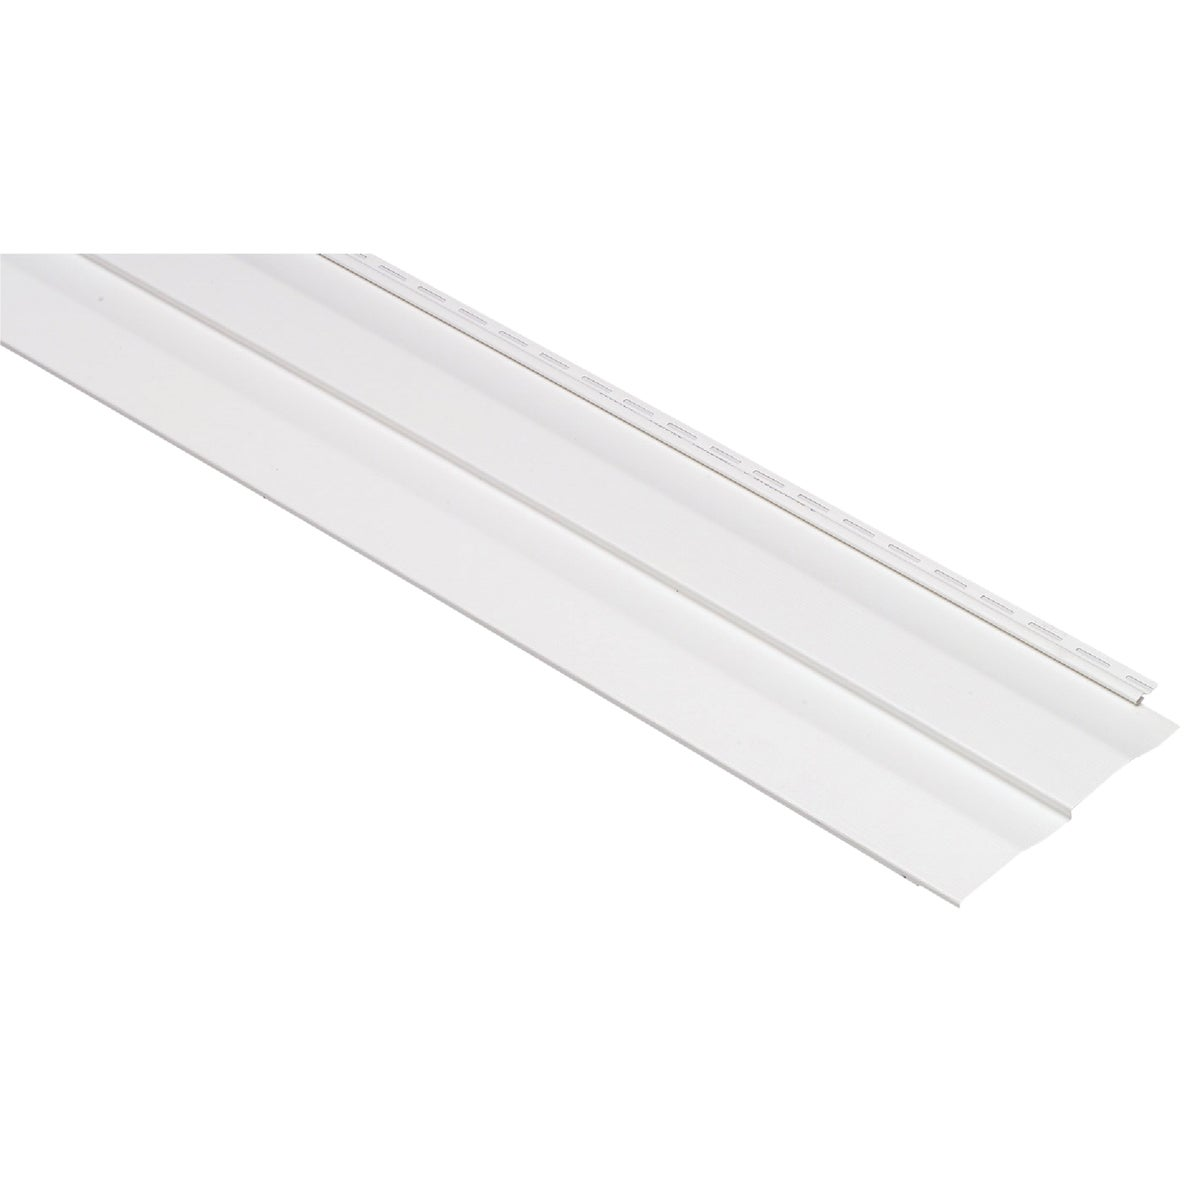 D5DL WHT VP VINYL SIDING - 531674 by Bluelinx